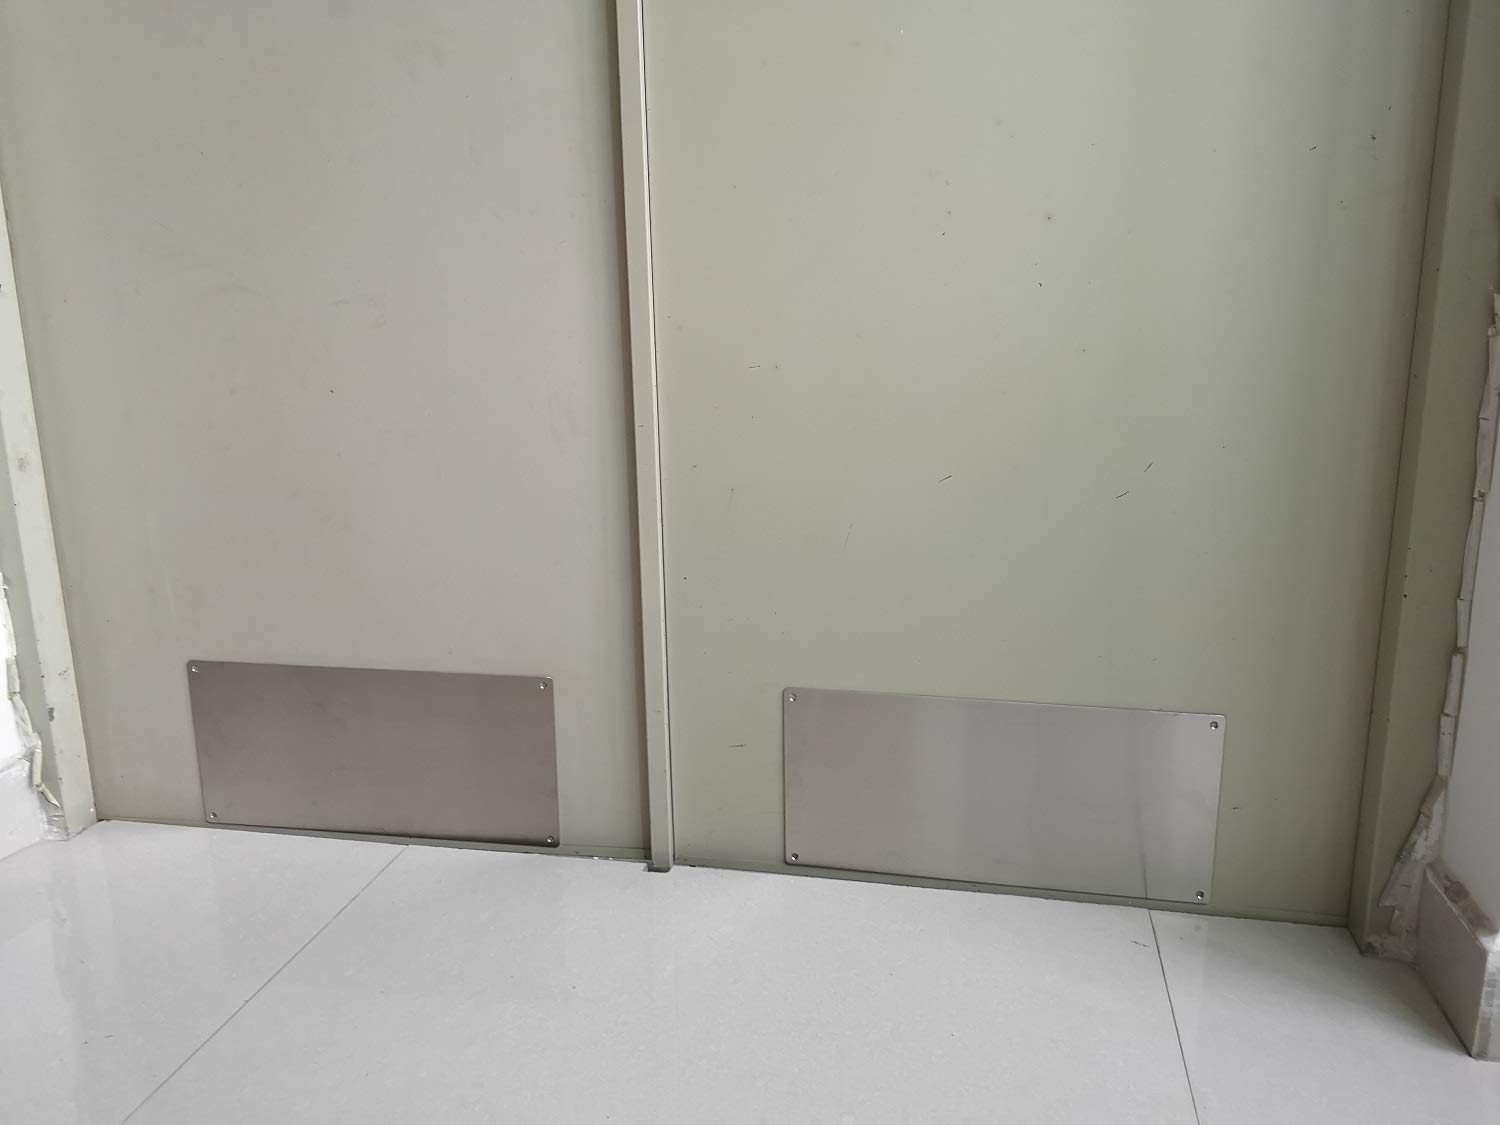 Promotion! VRSS Pack of 2 Satin Finish 304 Stainless Steel Kick Plate 200mm Height x 430mm Width 1.2mm Thick, 2 Pack by VRSS (Image #5)